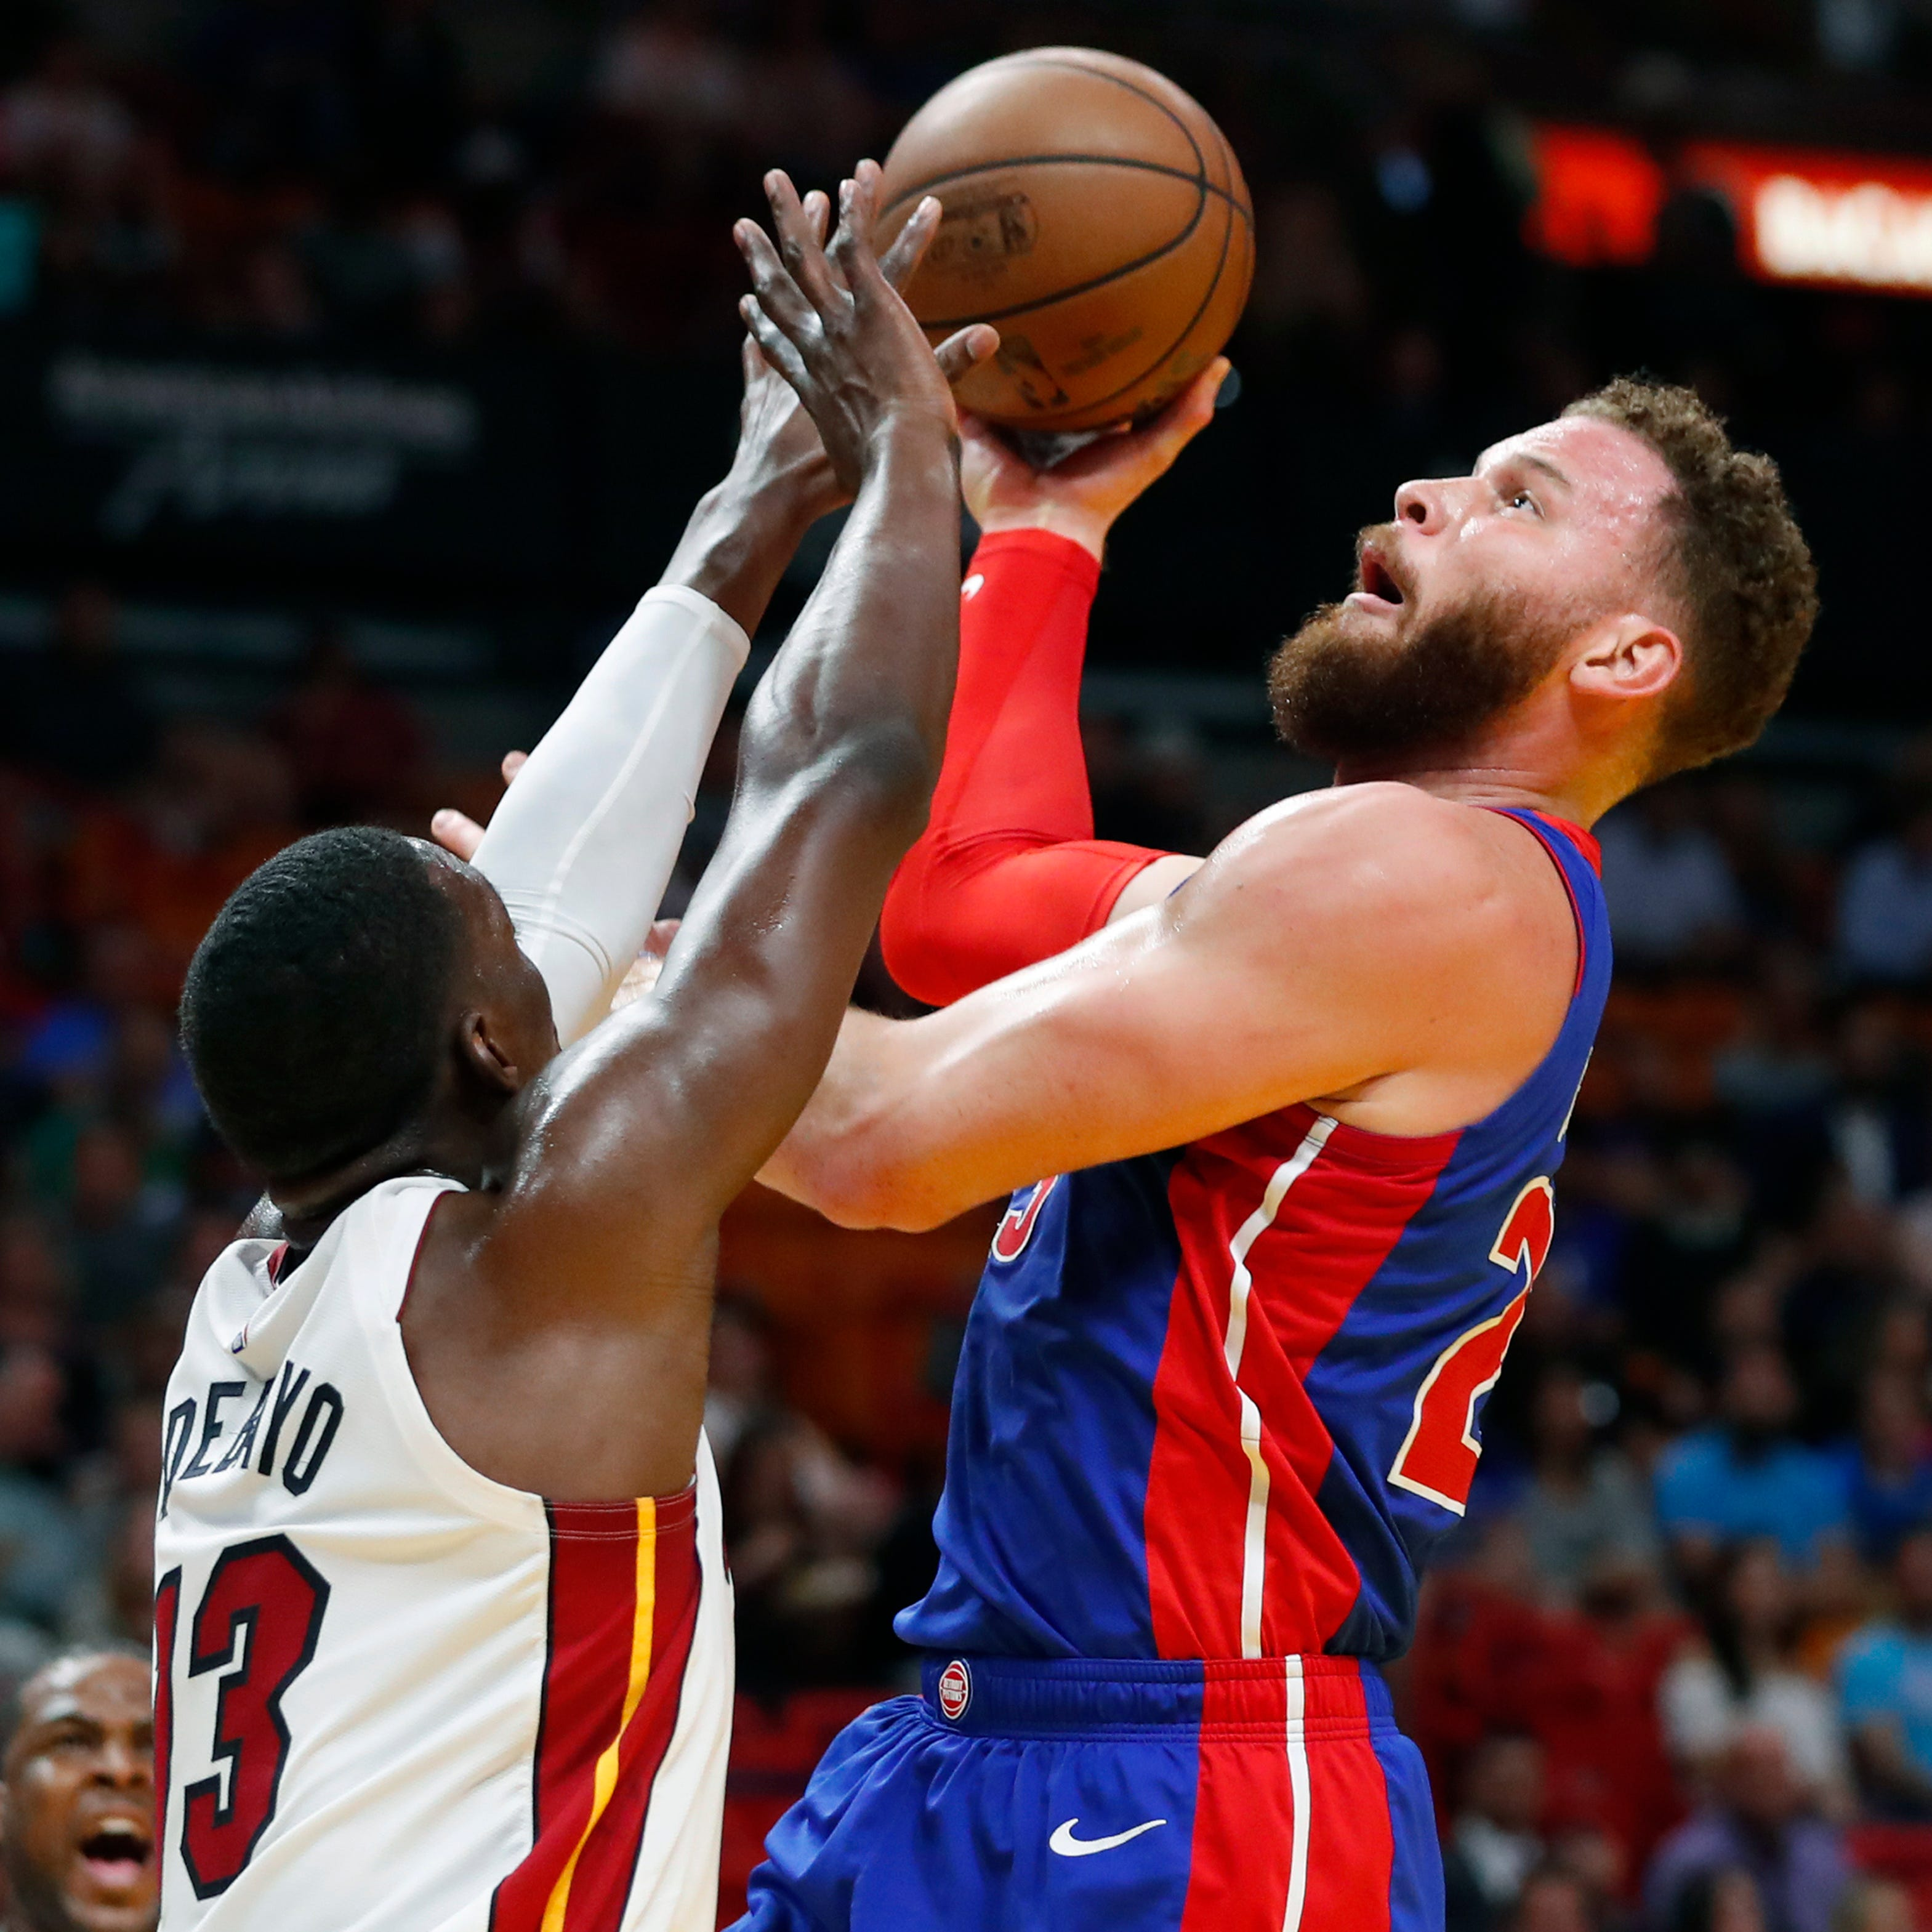 'They spanked us': Pistons go ice-cold in third, get demolished by Heat